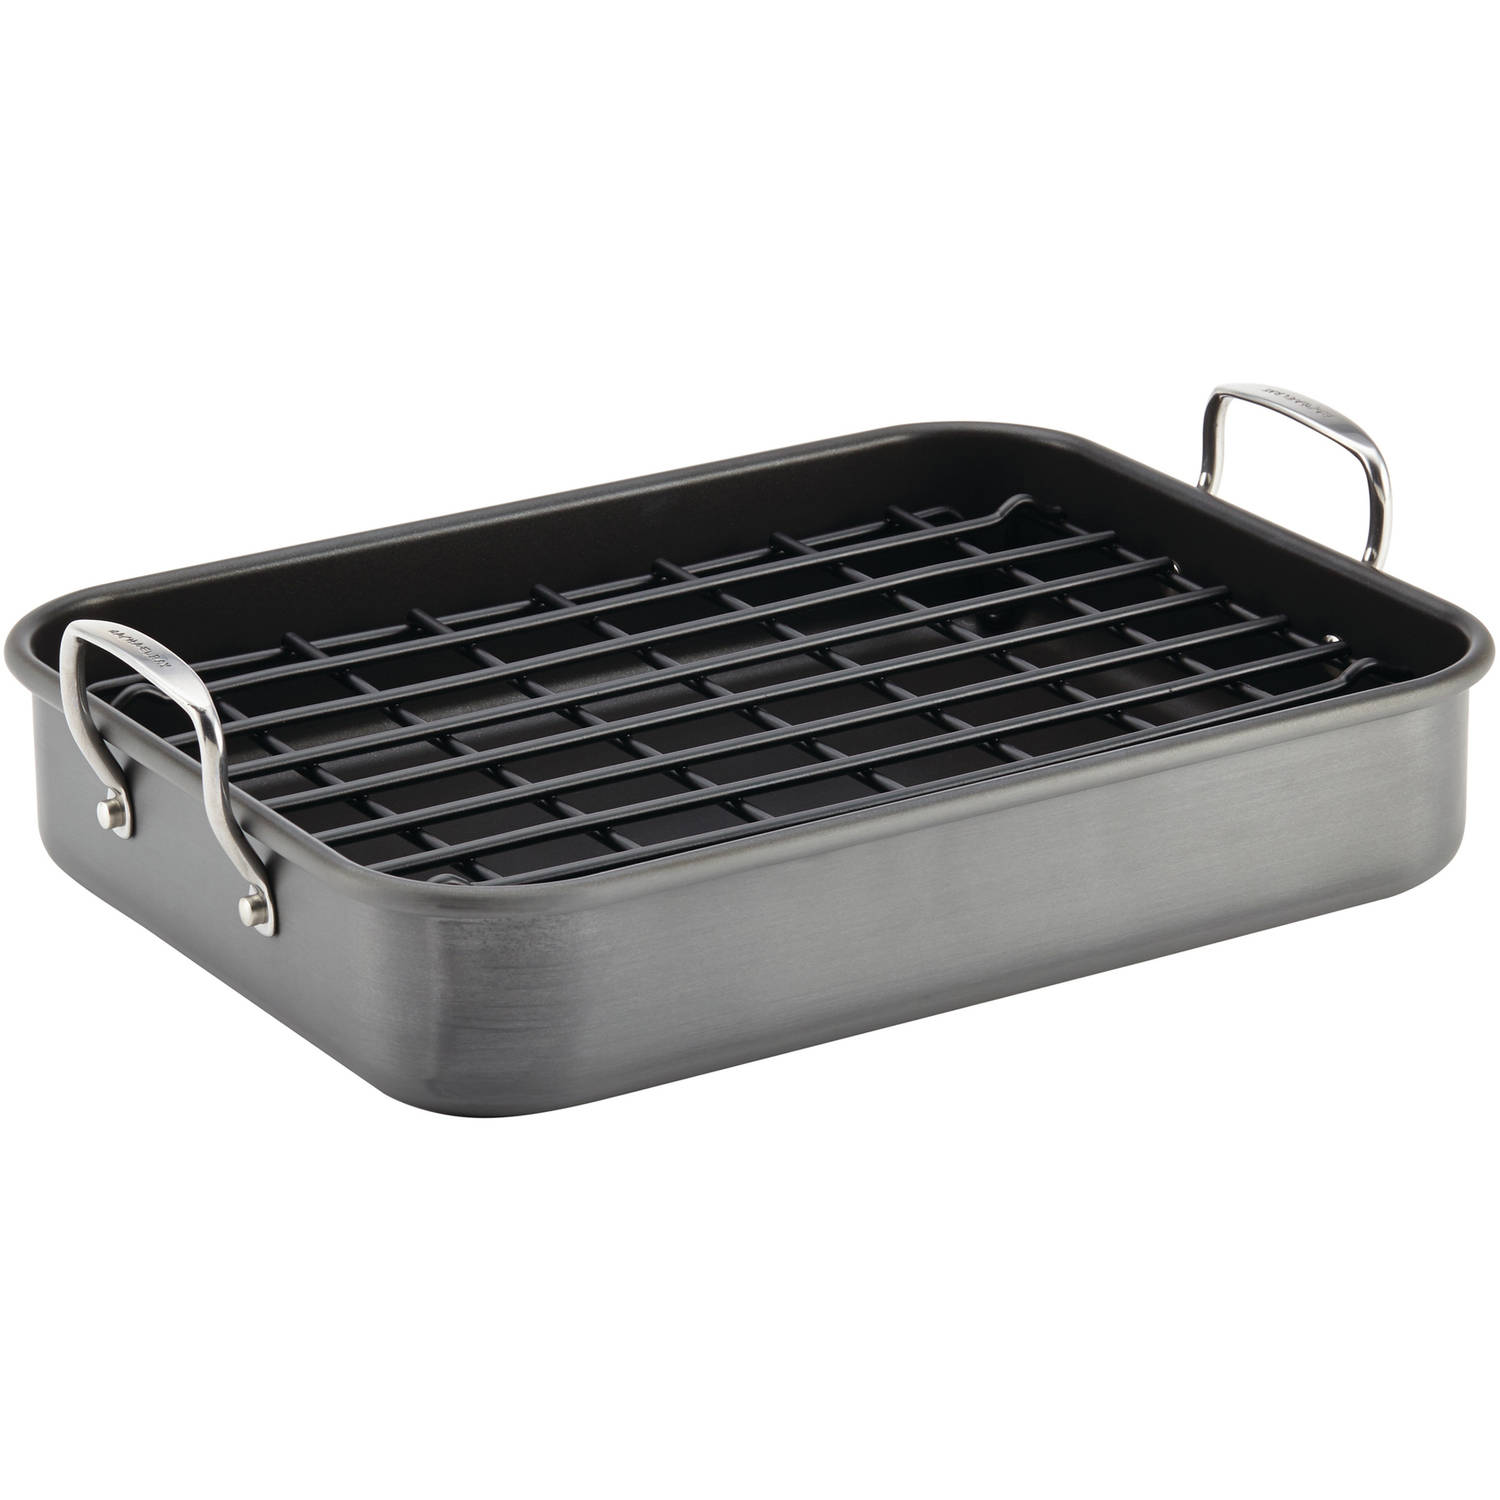 "Rachael Ray Hard-Anodized Nonstick Bakeware 16"" x 12"" Roaster with Dual-Height Rack, Gray"